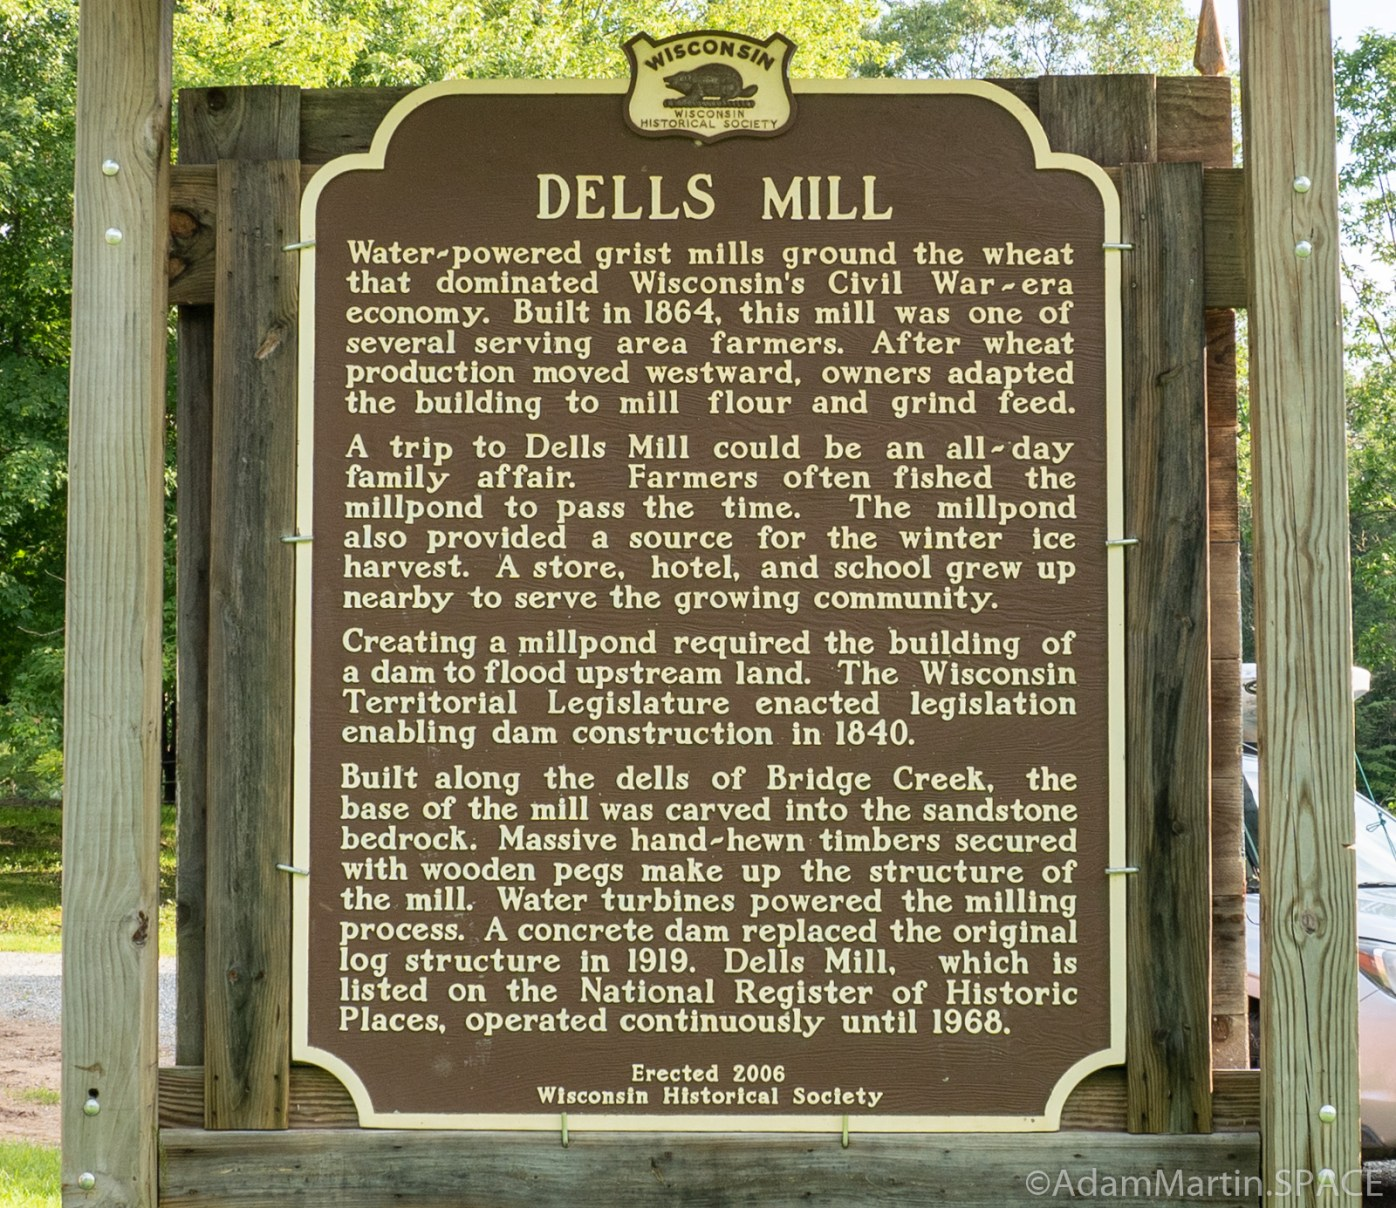 Dells Mill - Wisconsin Historic Society sign